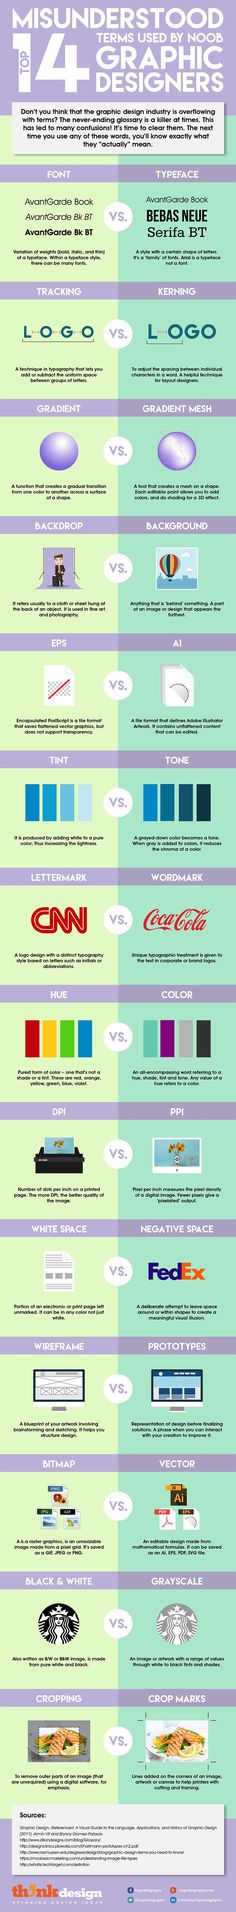 Infographic: Top 14 Graphic Design Terms Commonly Misused By Novice Creatives – … – business marketing ideas Web Design Trends, Web Design Blog, Graphisches Design, Website Design, Graphic Design Tutorials, Tool Design, Graphic Design Inspiration, Layout Design, Design Taxi